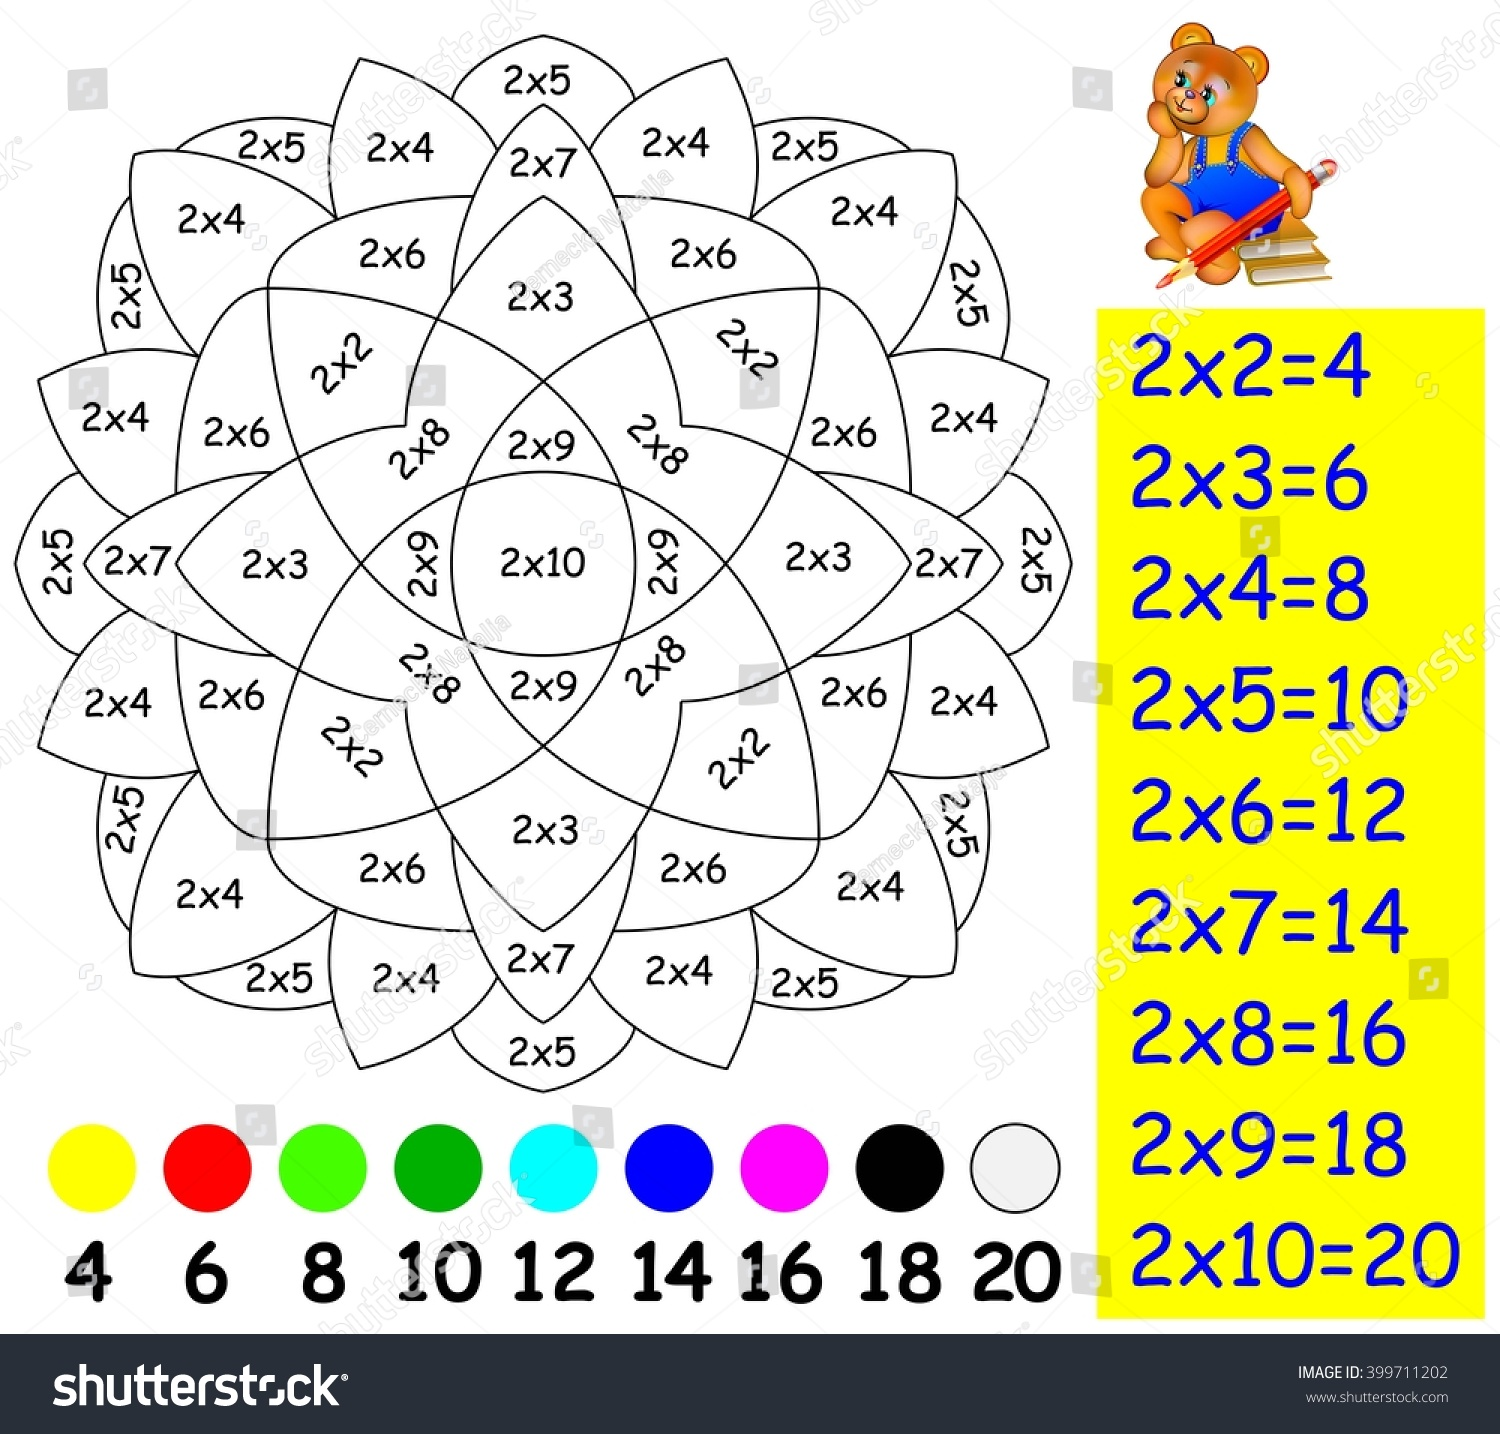 Tablas De Multiplicar Extendidas Actividades Ldicas Educativas 2x2 Multiplication Subtraction